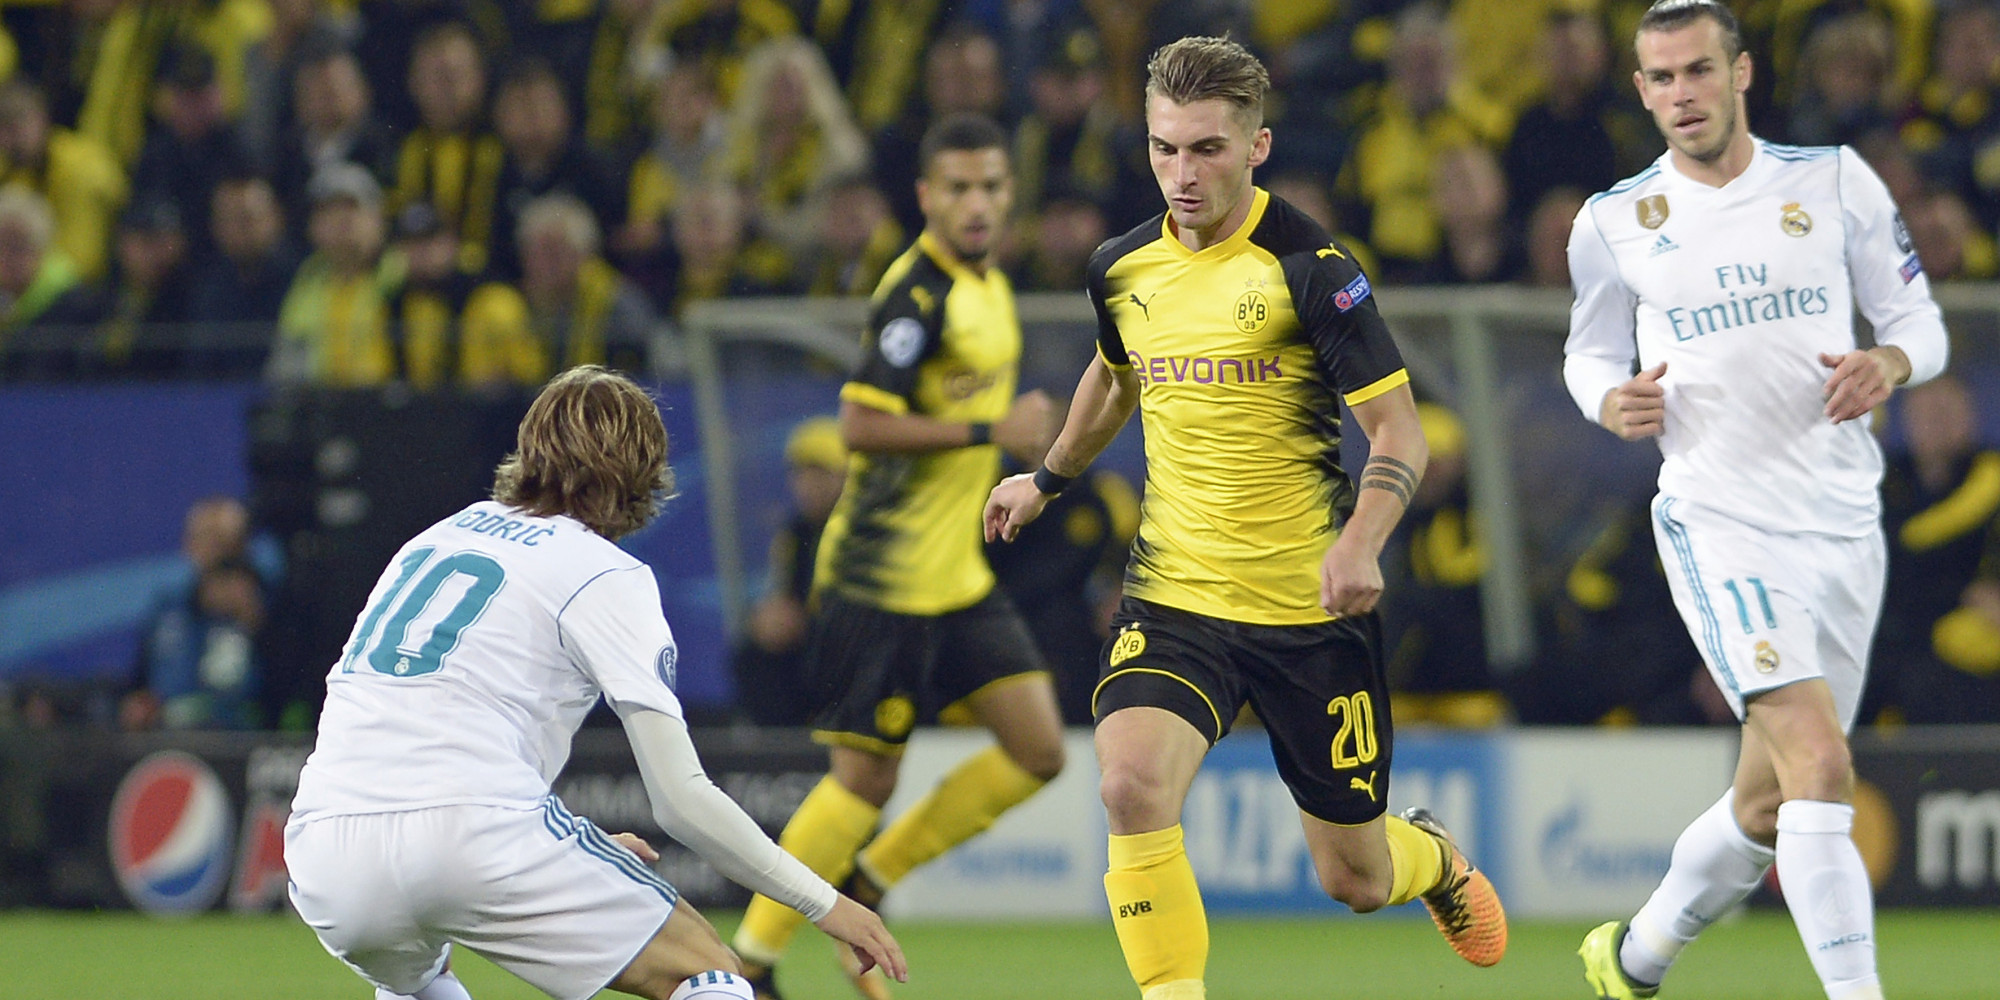 Real Madrid Bvb Dortmund Im Live Stream Champions League Online